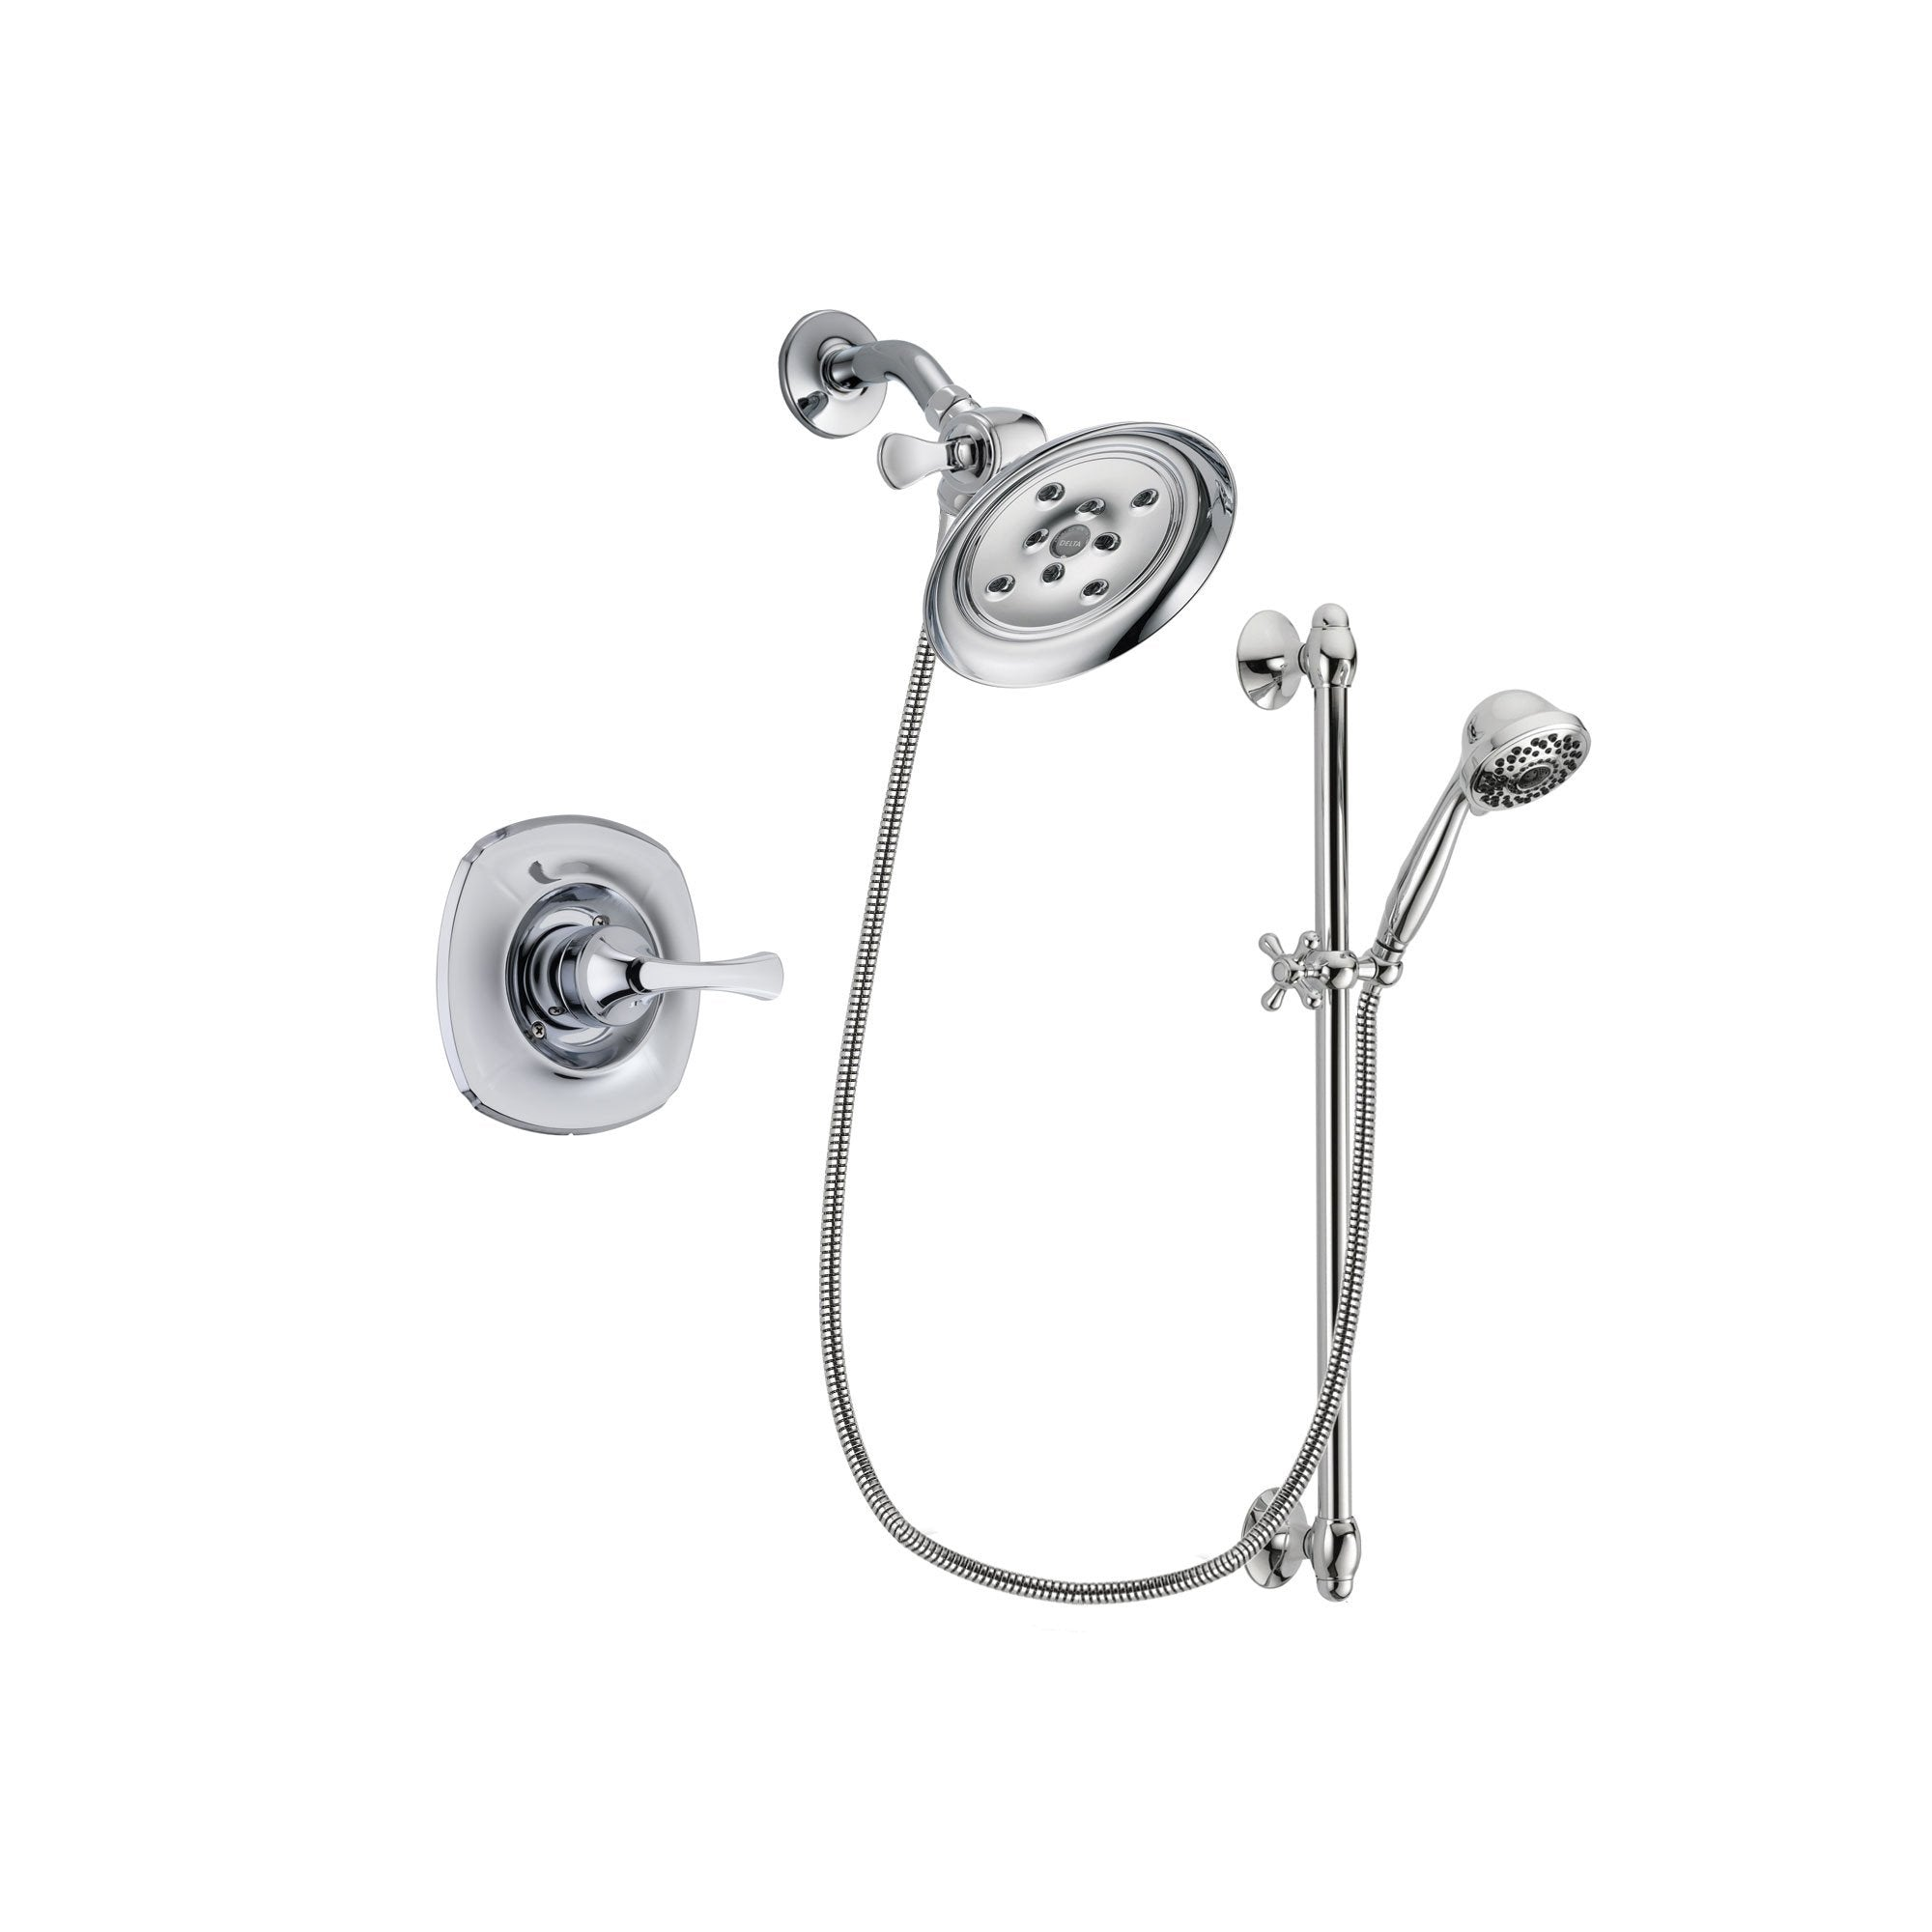 Delta Addison Chrome Shower Faucet System w/ Showerhead and Hand Shower DSP0646V